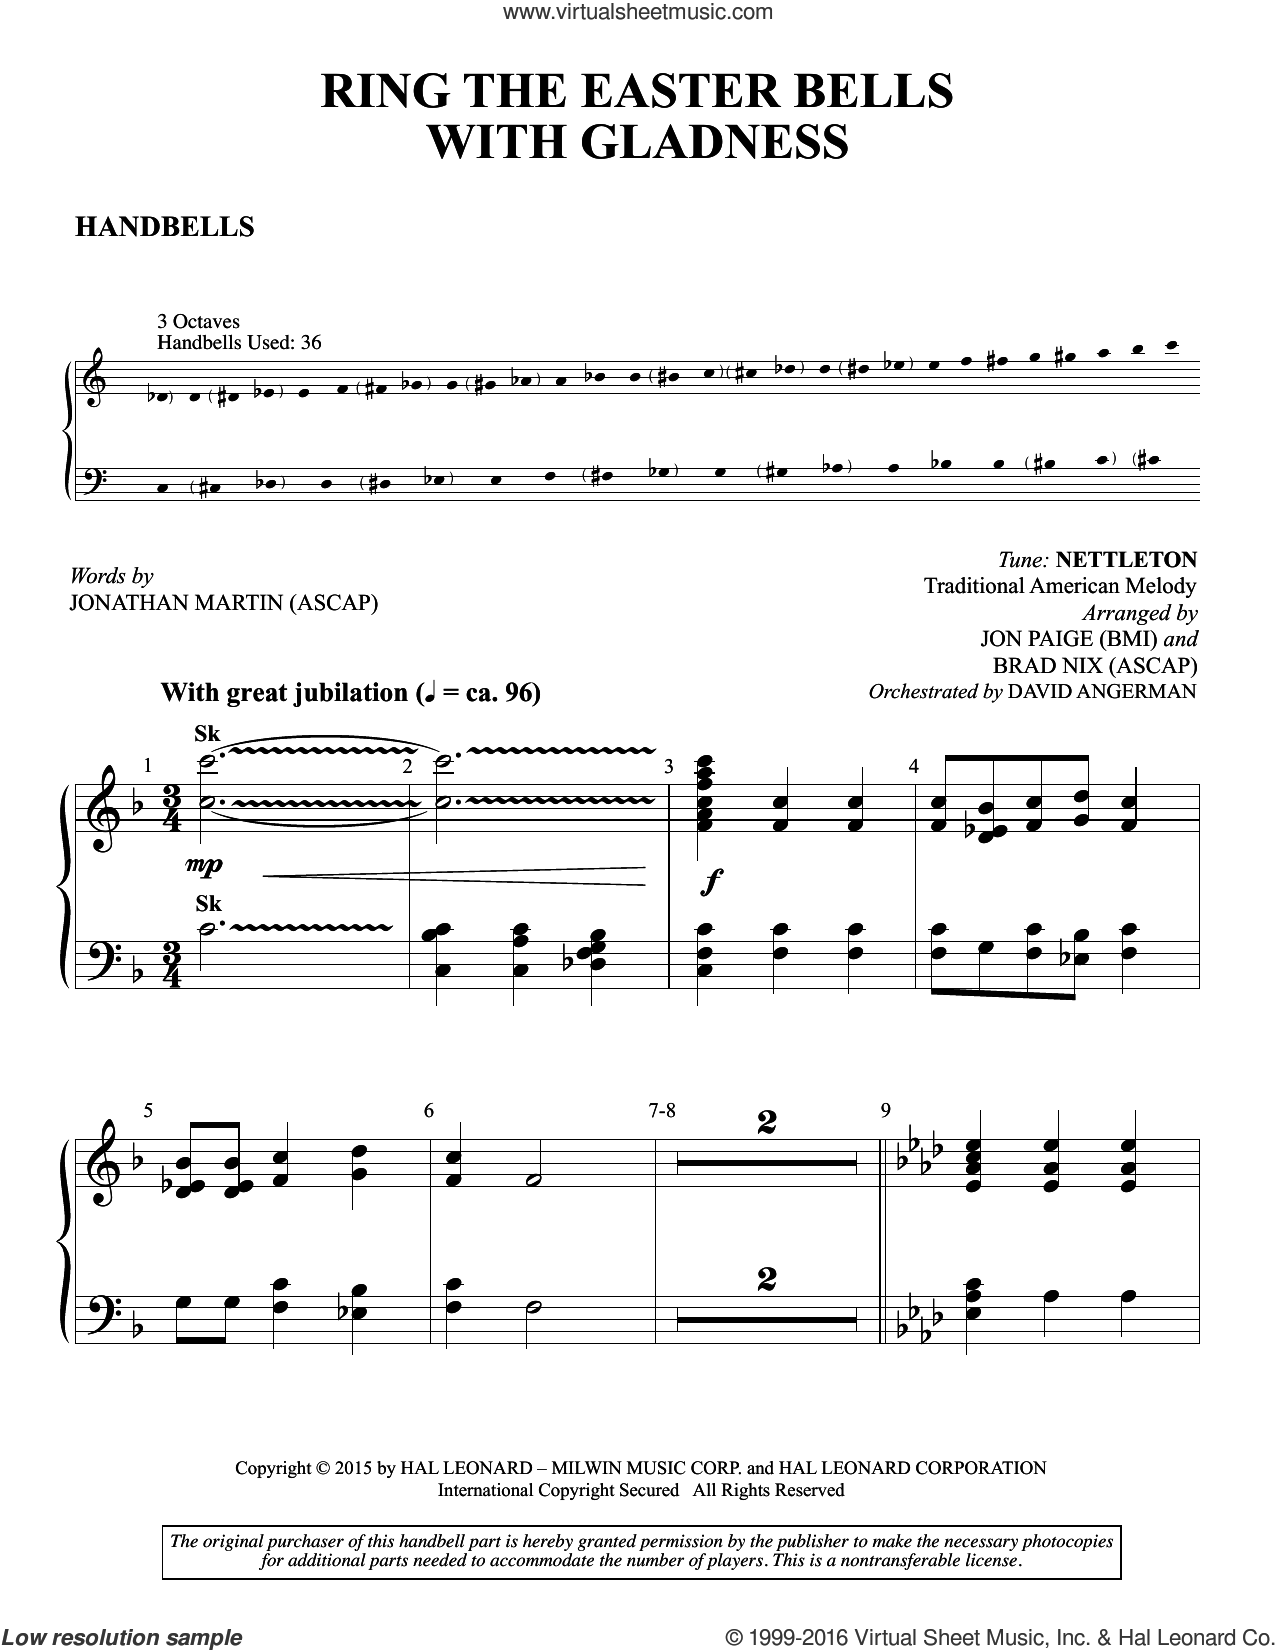 Ring the Easter Bells with Gladness sheet music for orchestra/band (handbells) by Brad Nix, Jon Paige and Jonathan Martin, intermediate